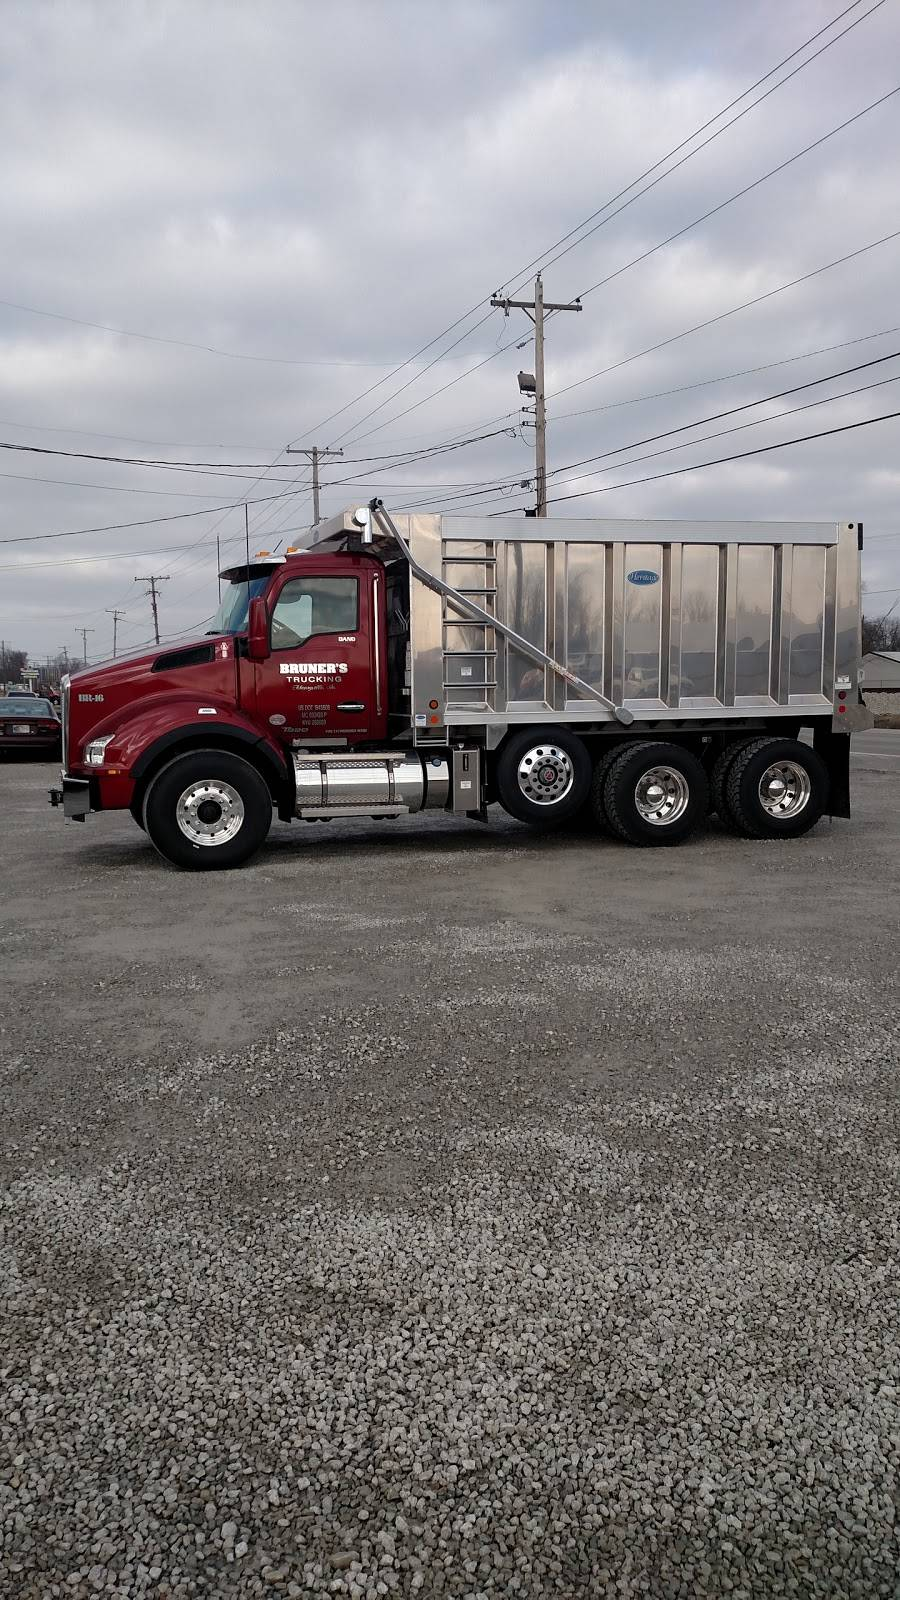 Bruners Trucking - moving company  | Photo 3 of 8 | Address: 1720b Old Potters Ln, Clarksville, IN 47129, USA | Phone: (812) 593-4634